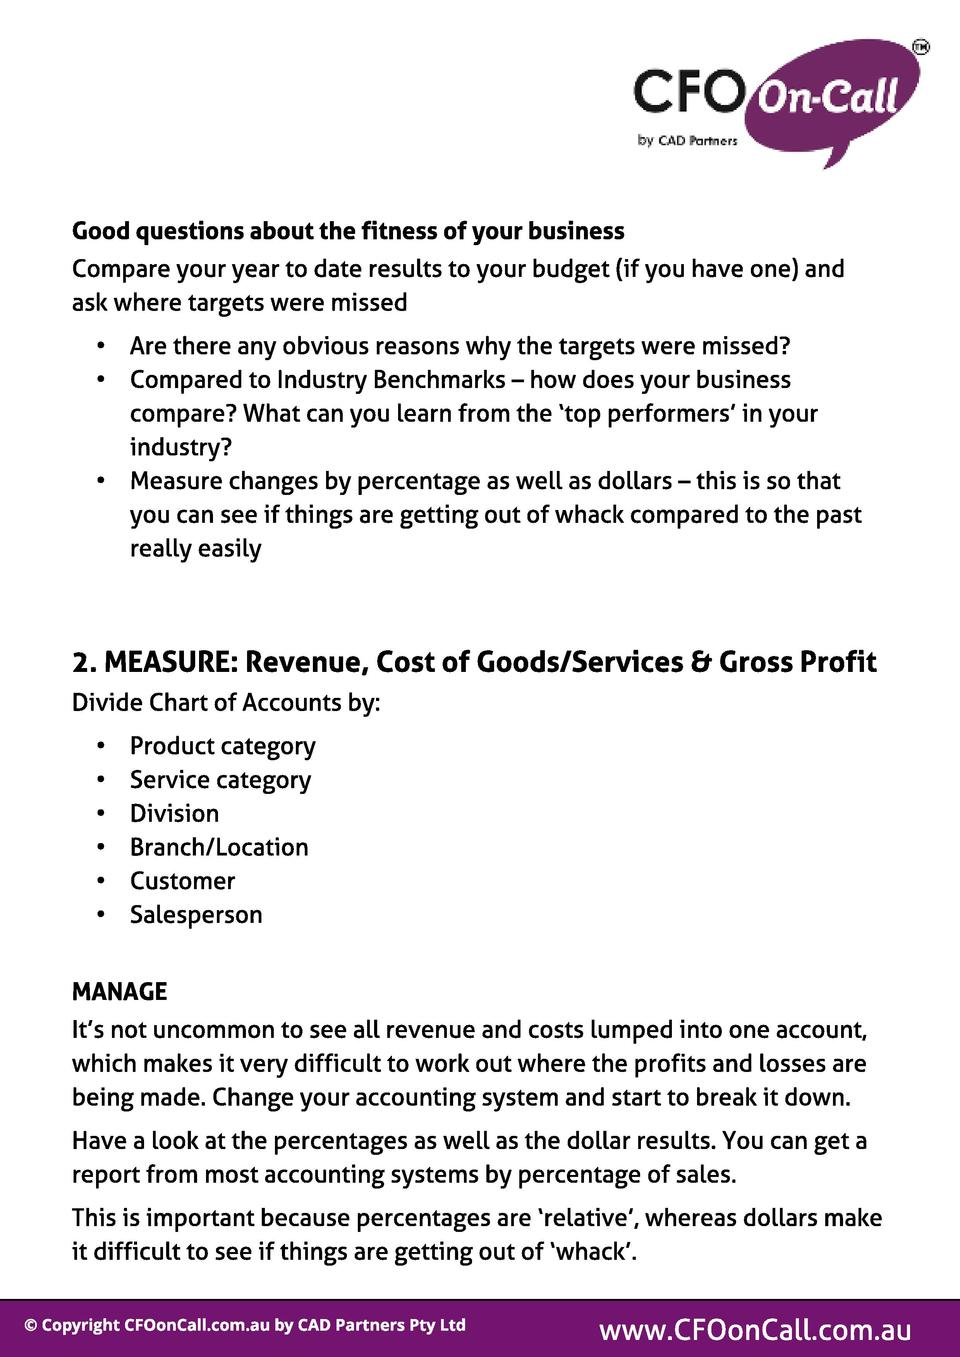 Good quest ions about t he f it ness of your business Compare your year to date results to your budget  if you have one  a...